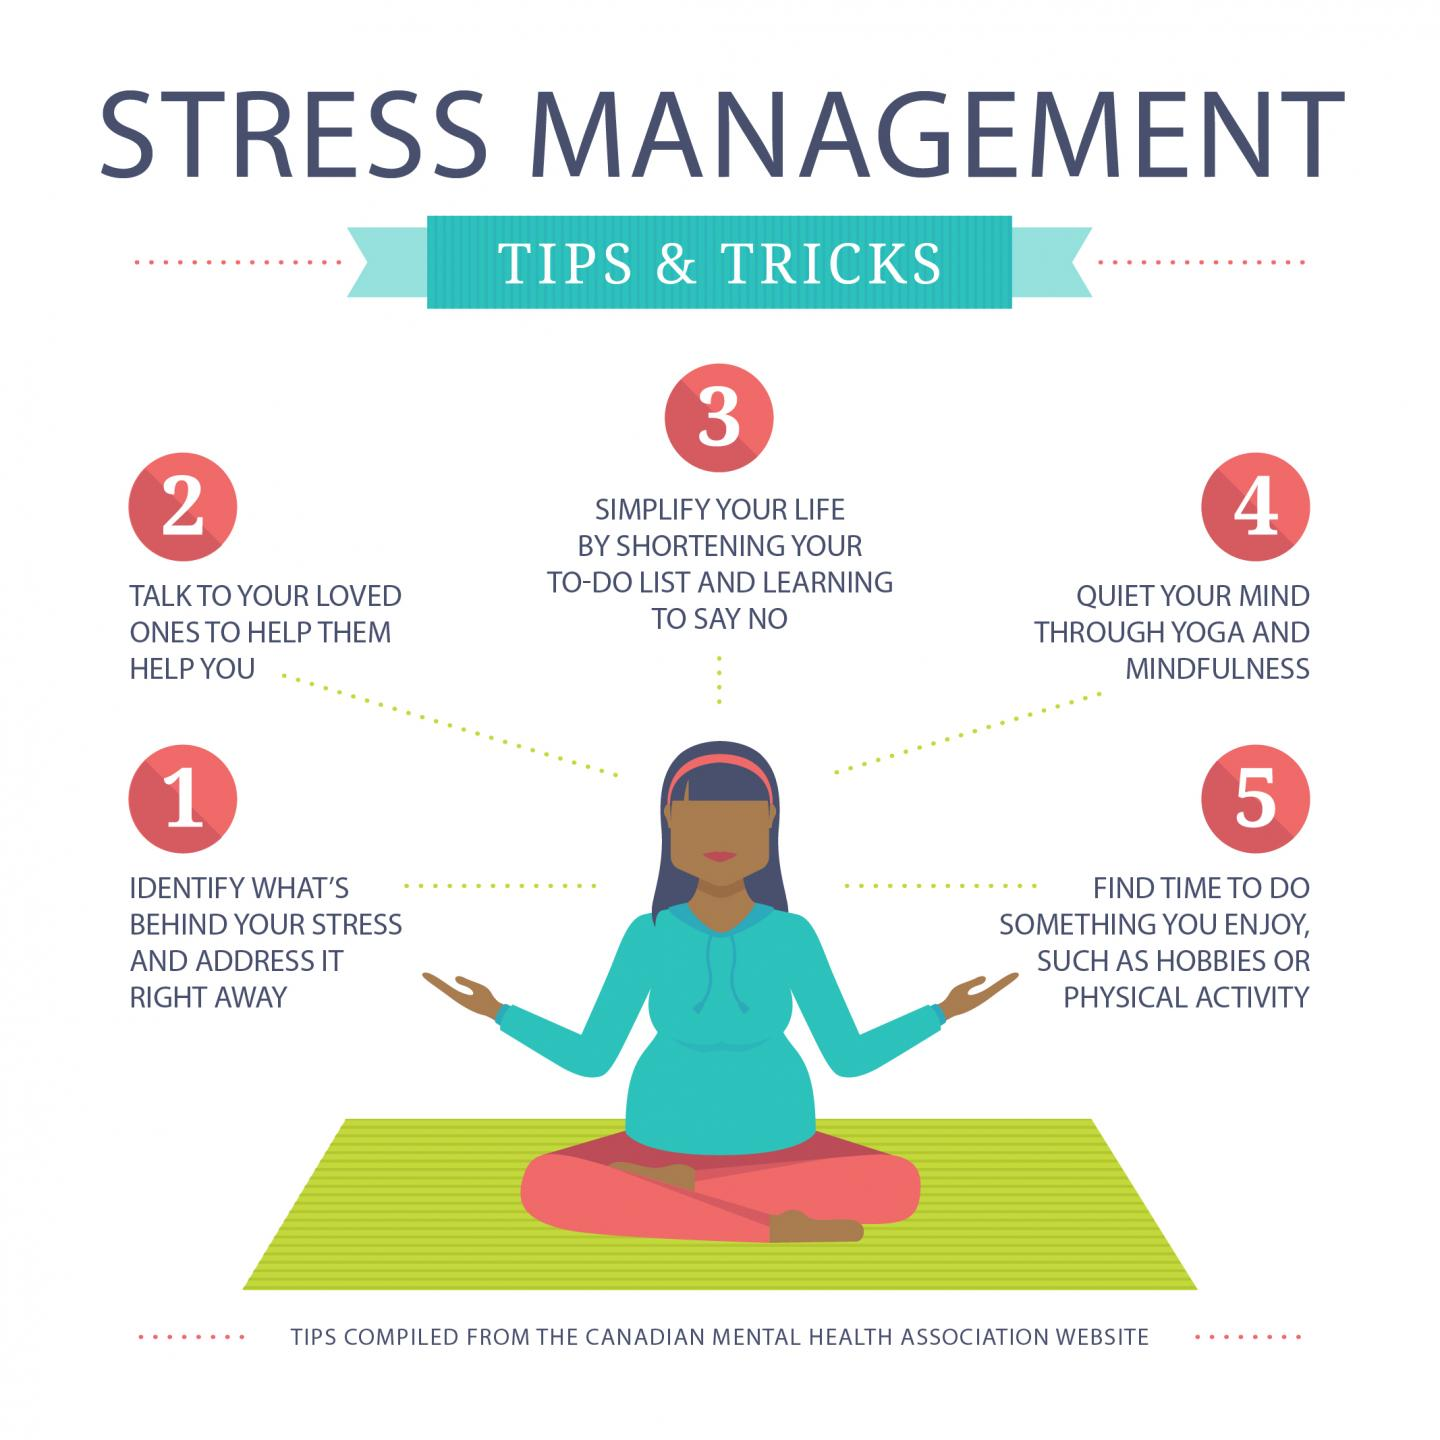 Stress Management Tips Amp Tricks Image